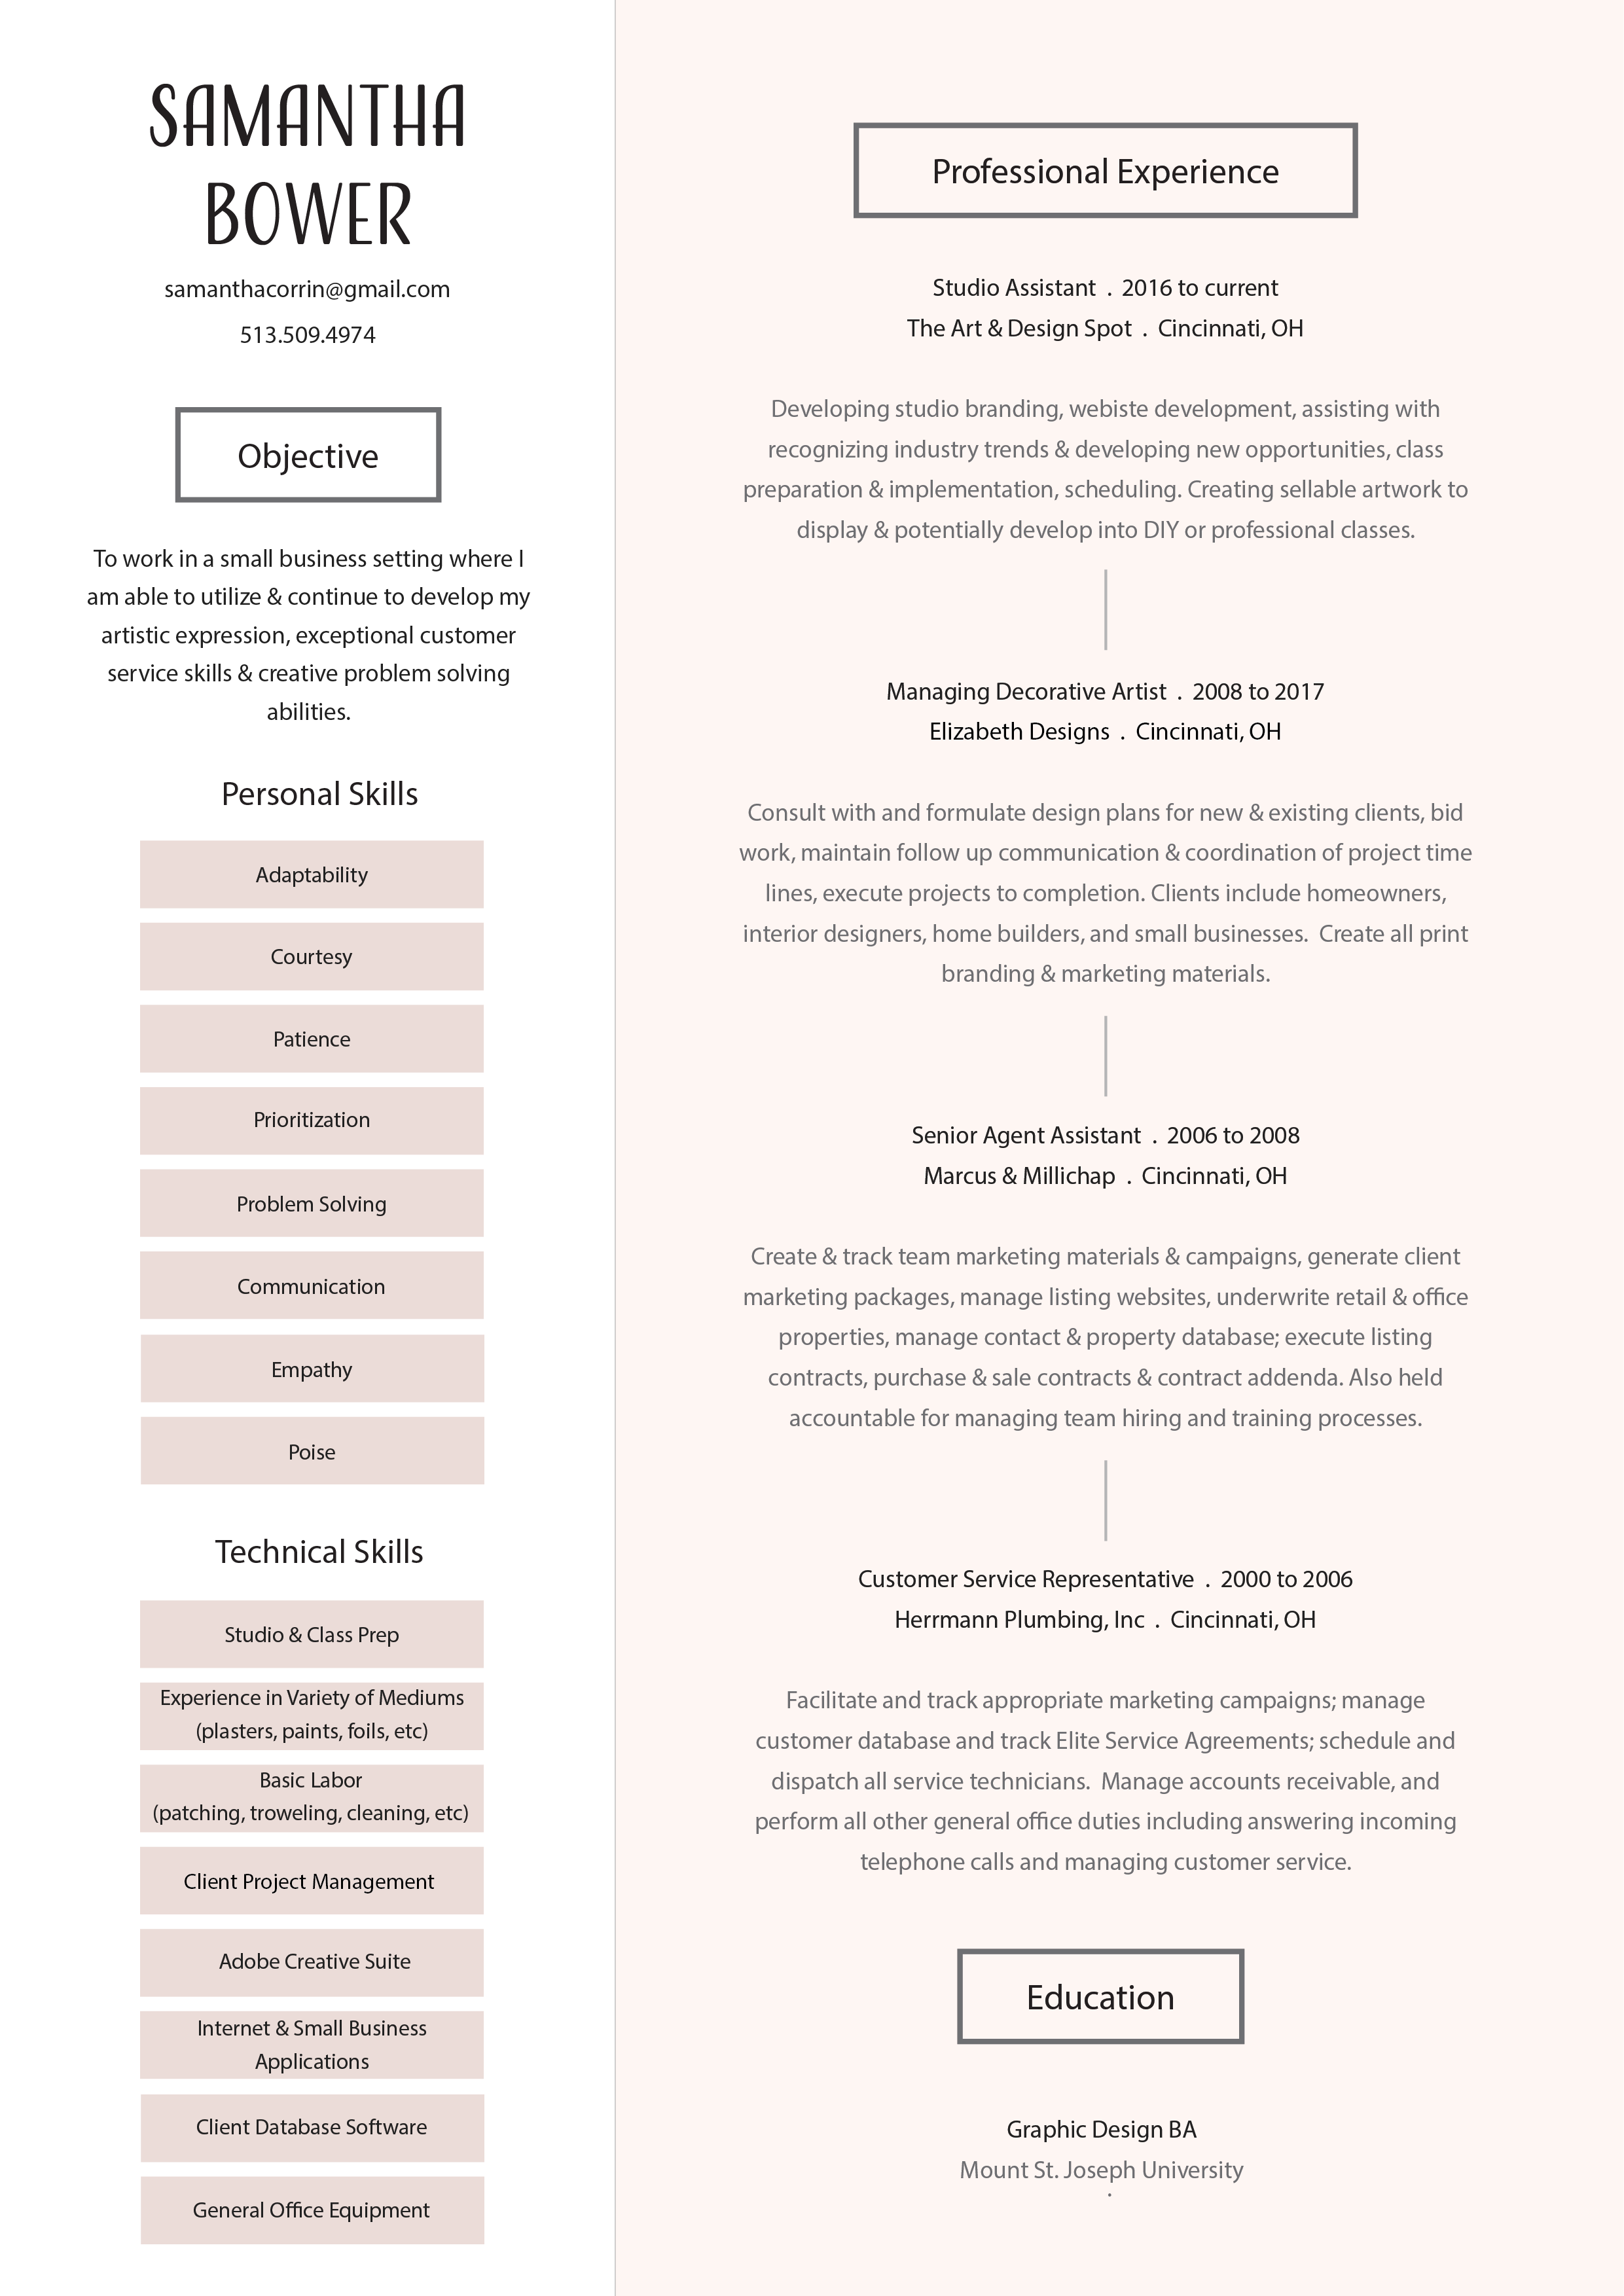 Sbower Gallery Assistant Resume-01.png